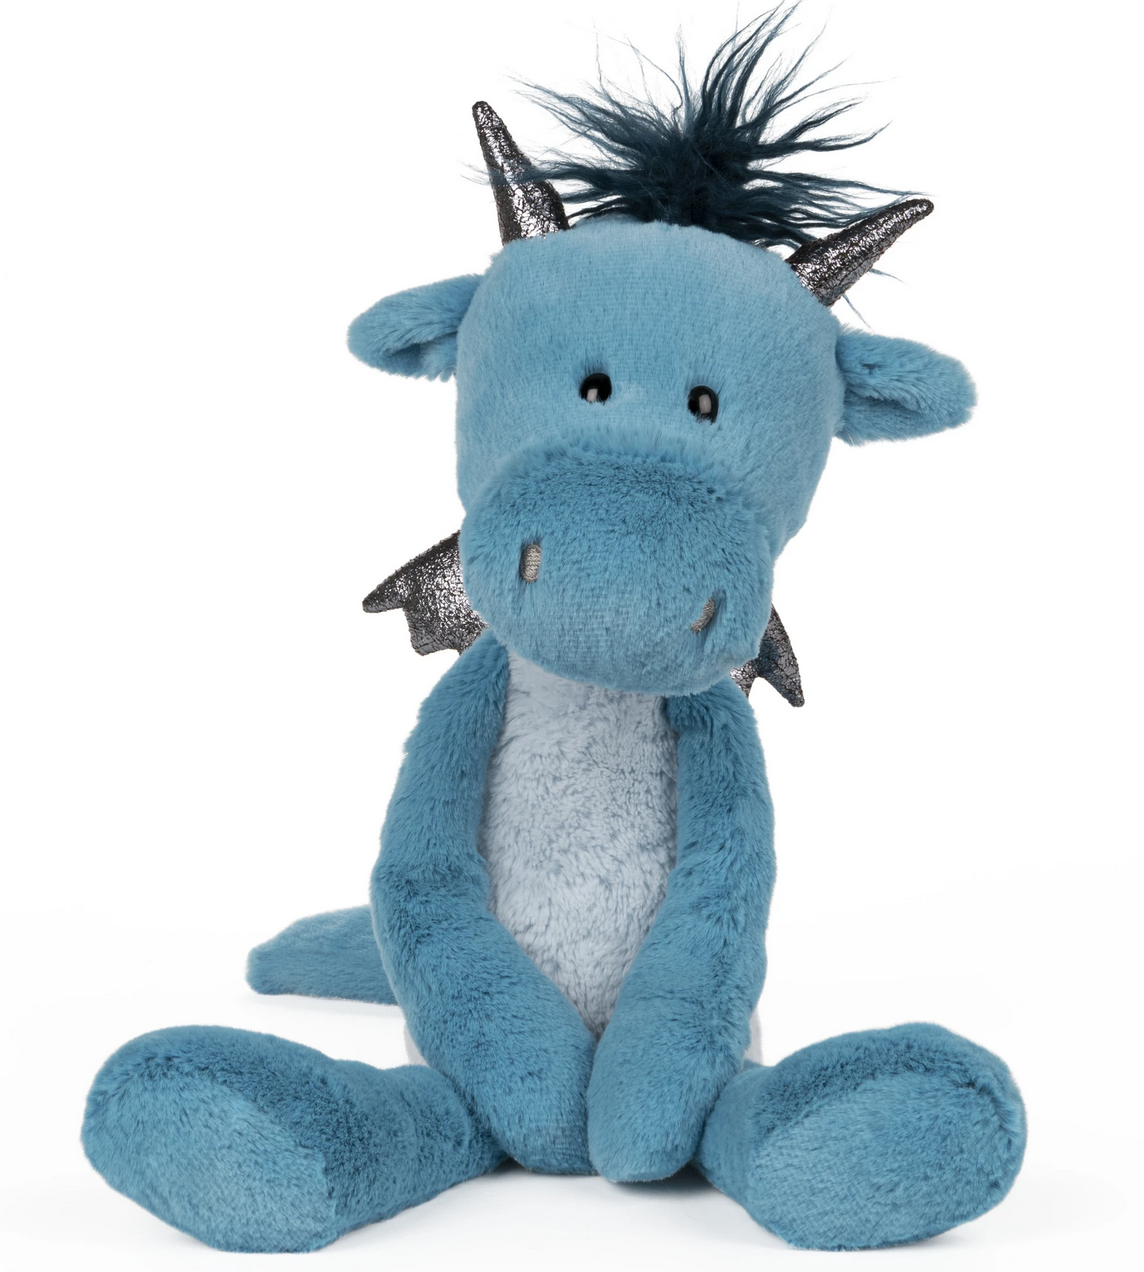 Toothpick Asher Dragon 15 In.